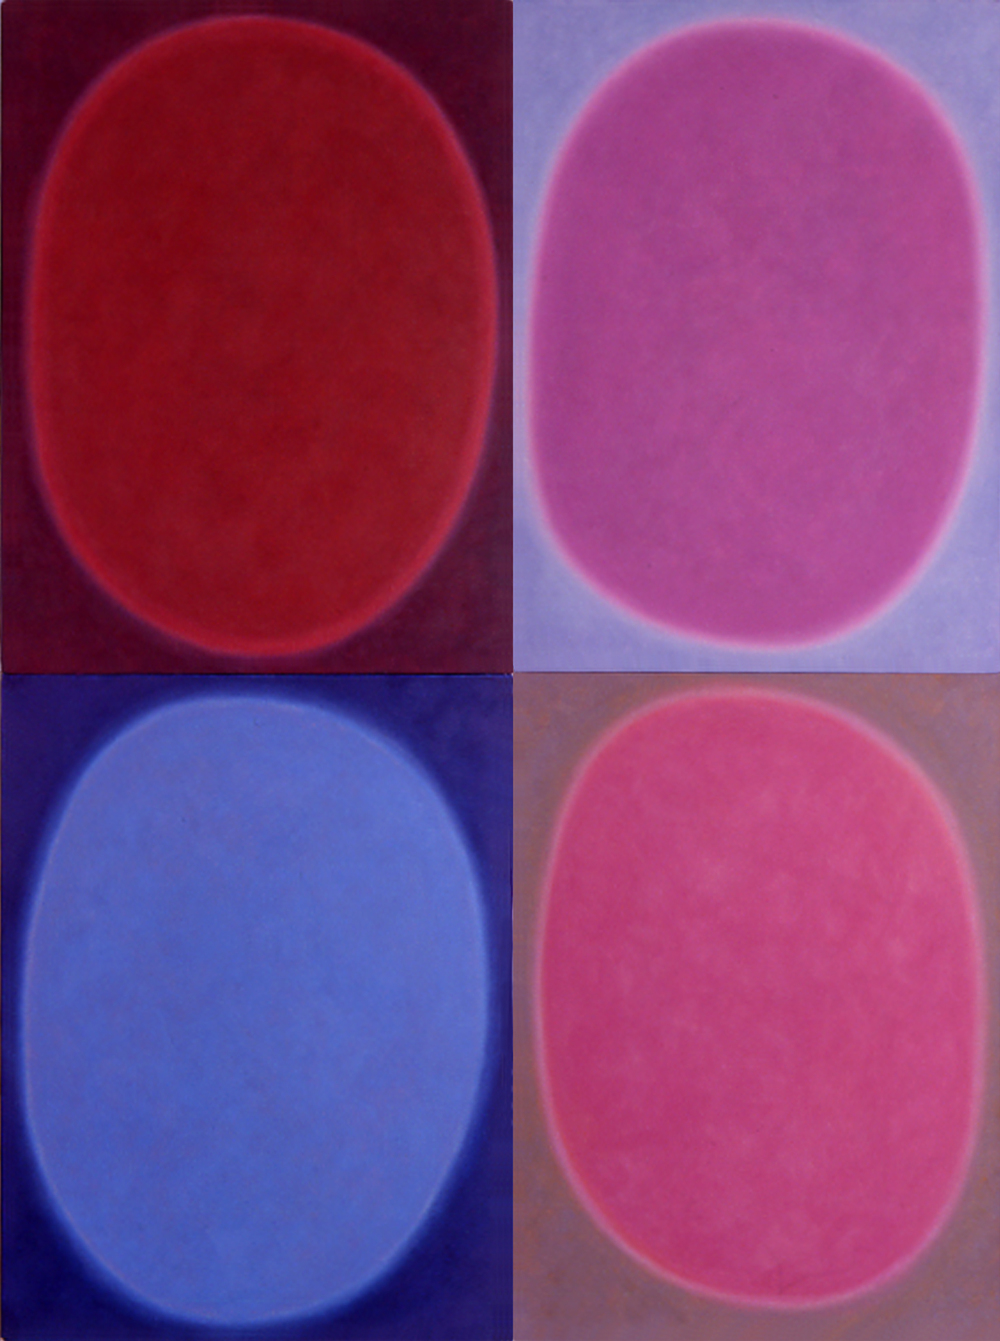 "Silent 13, oil on canvas, 2003, series of 4 panels W18"" x H24"" each, total format W36"" x H48"". Private collection."